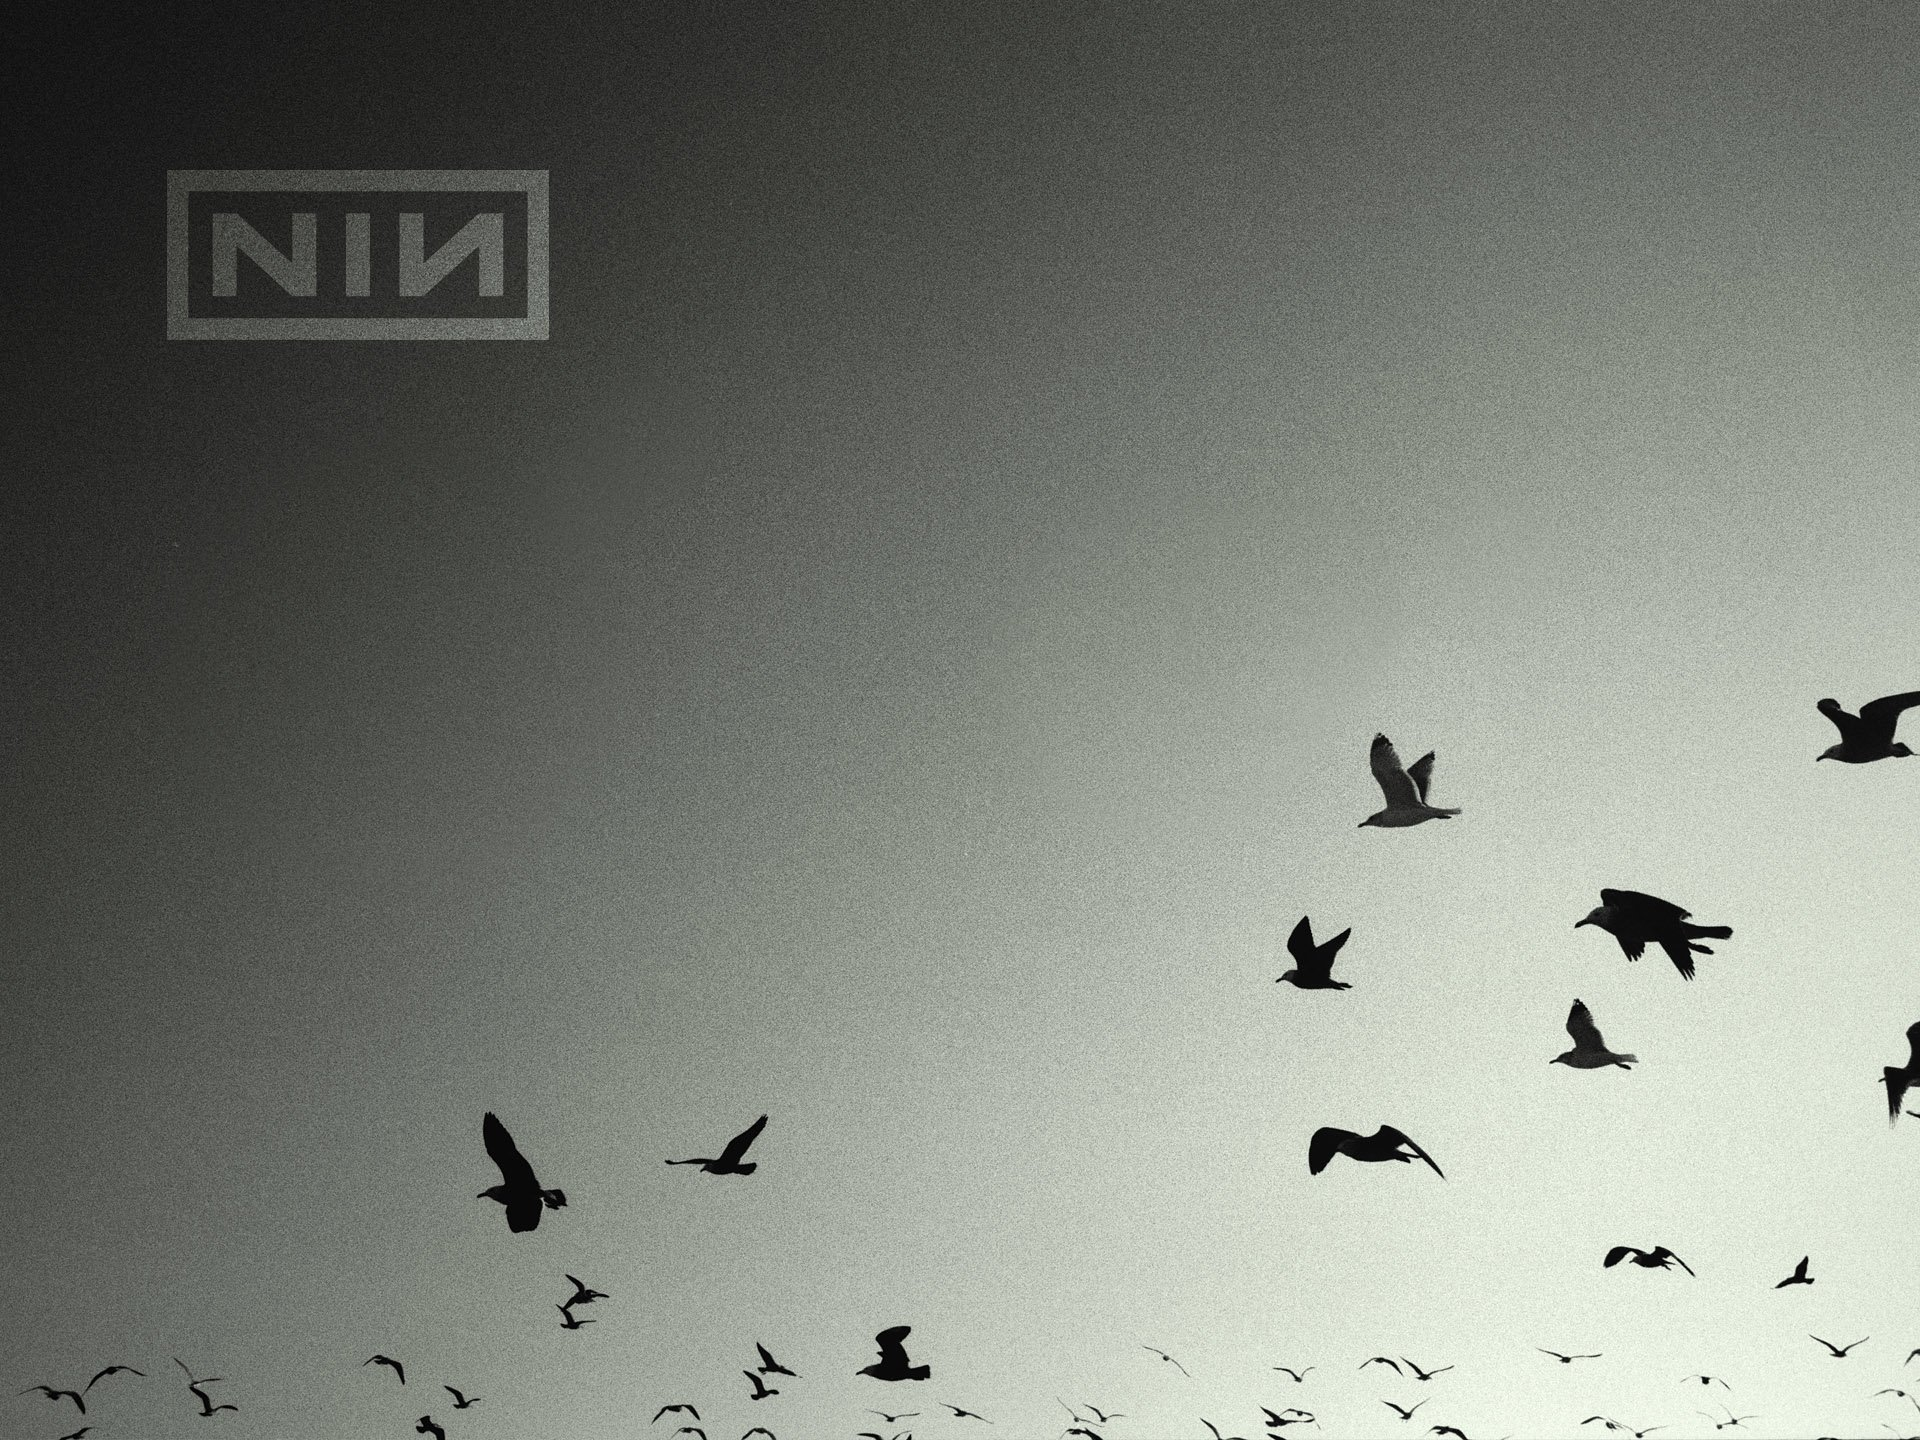 85 Nine Inch Nails Hd Wallpapers Background Images Wallpaper Abyss